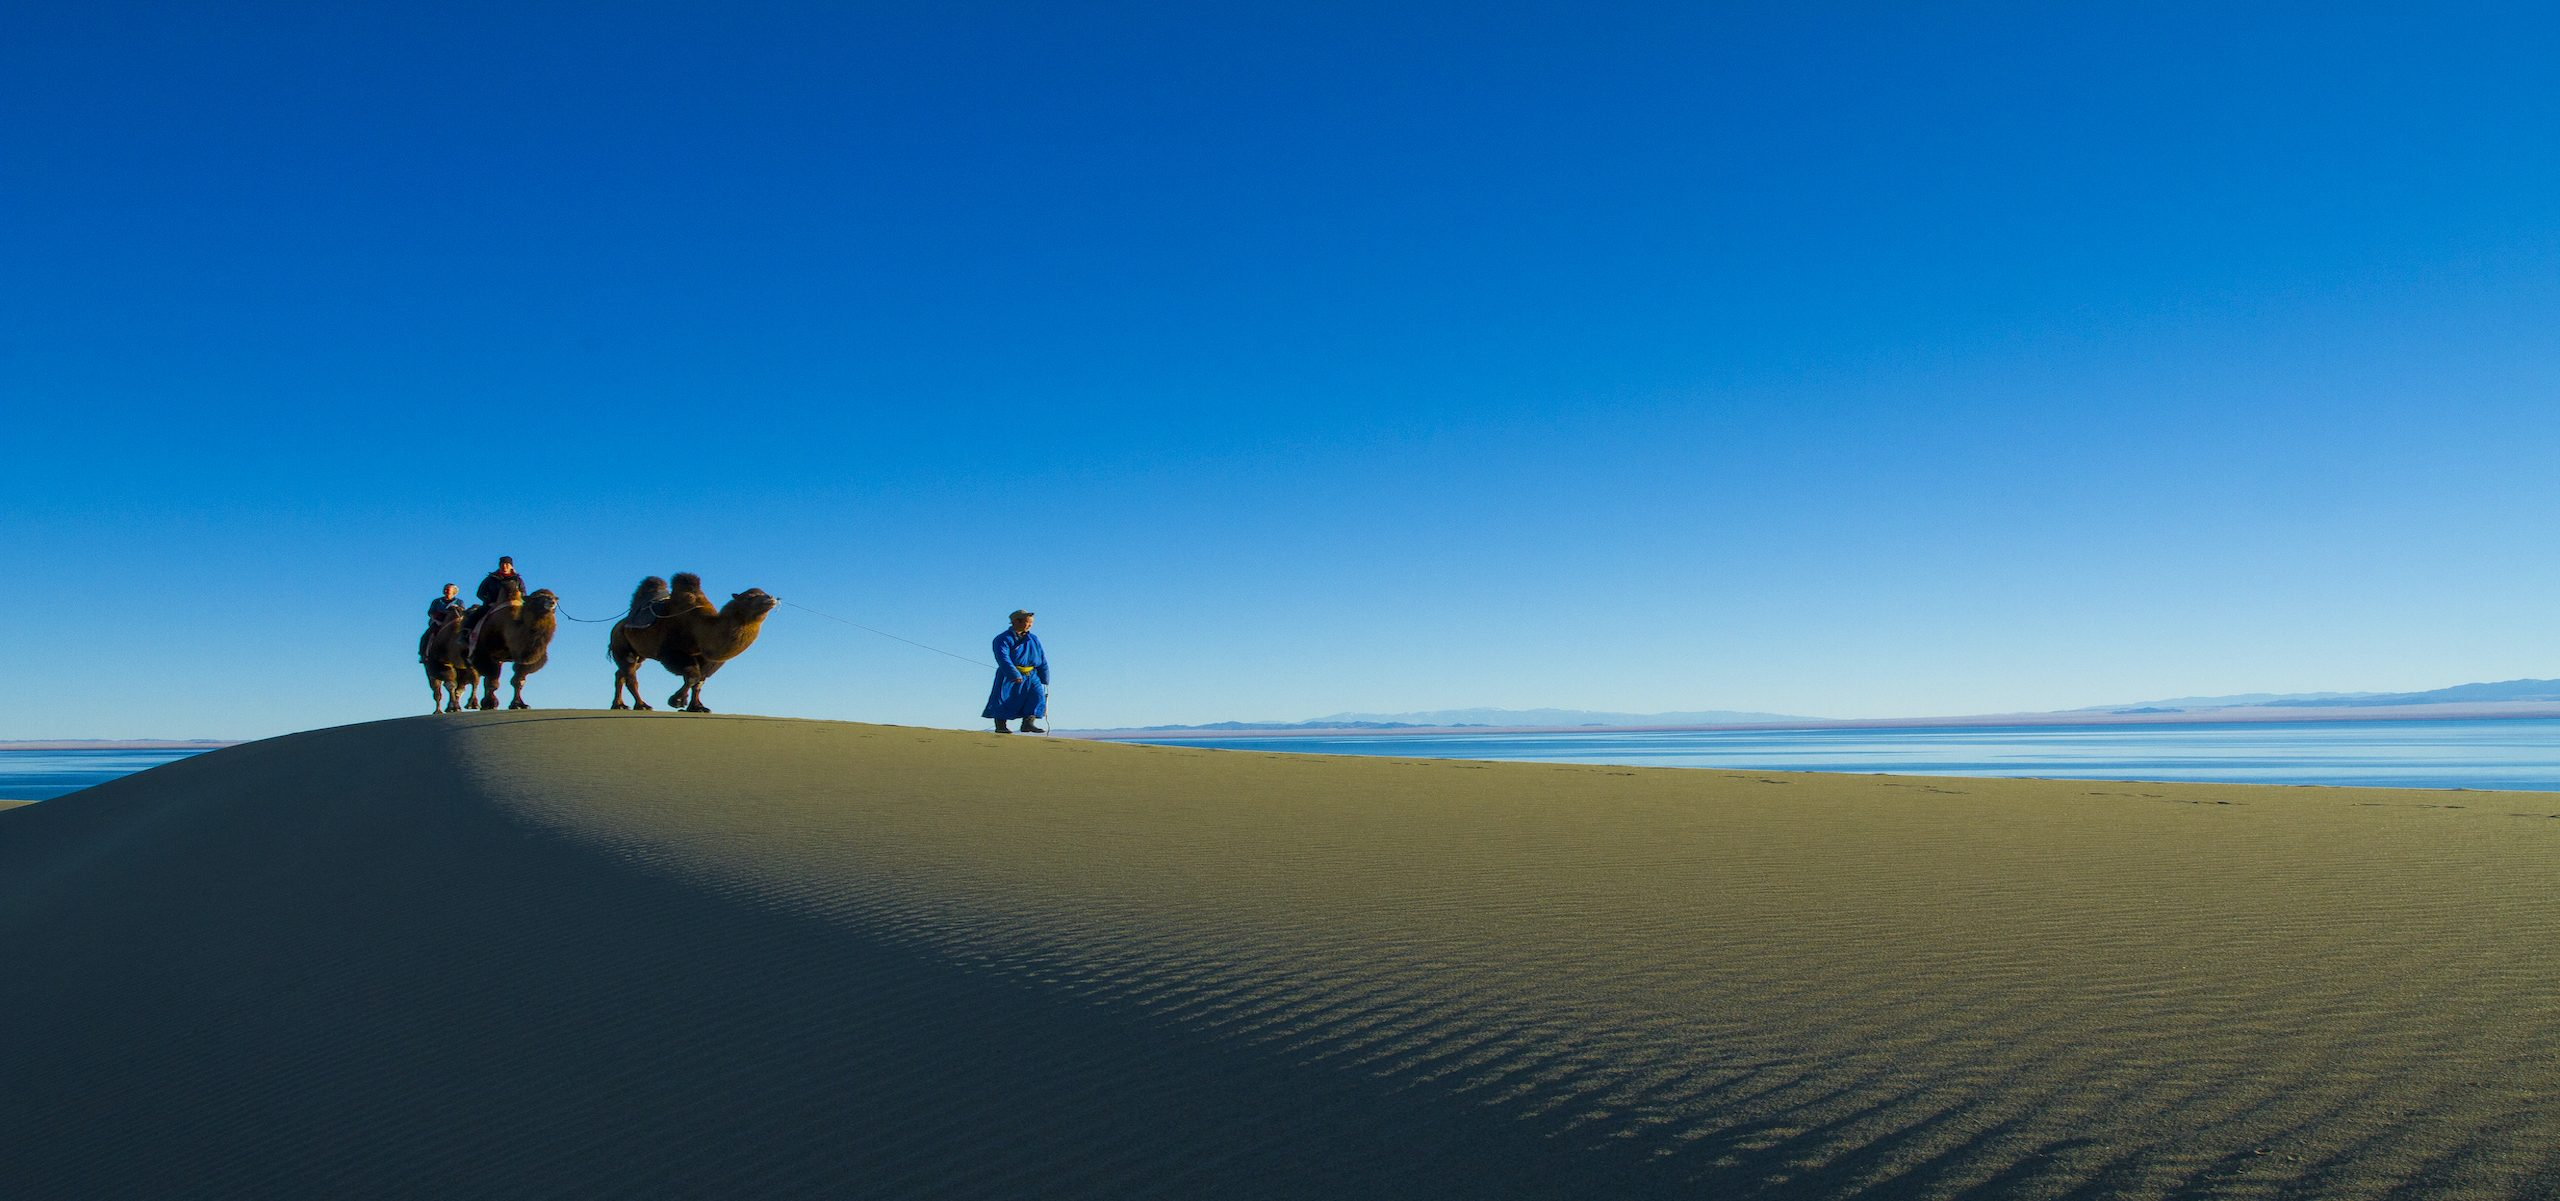 camel-riding-in-western-mongolia-by-manaljav (1)